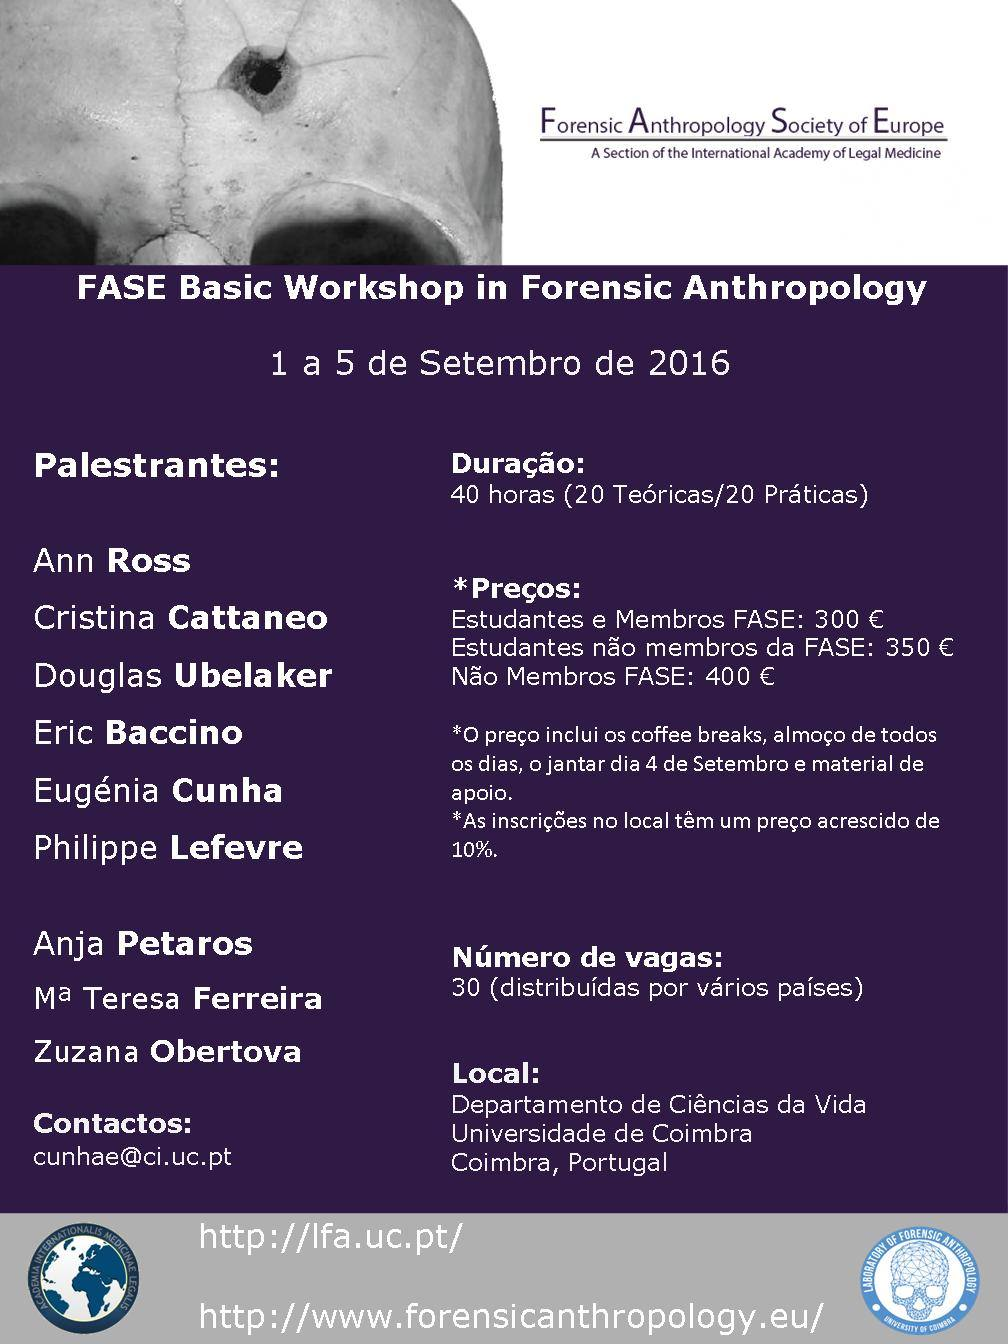 FASE Basic Workshop in Forensic Anthropology